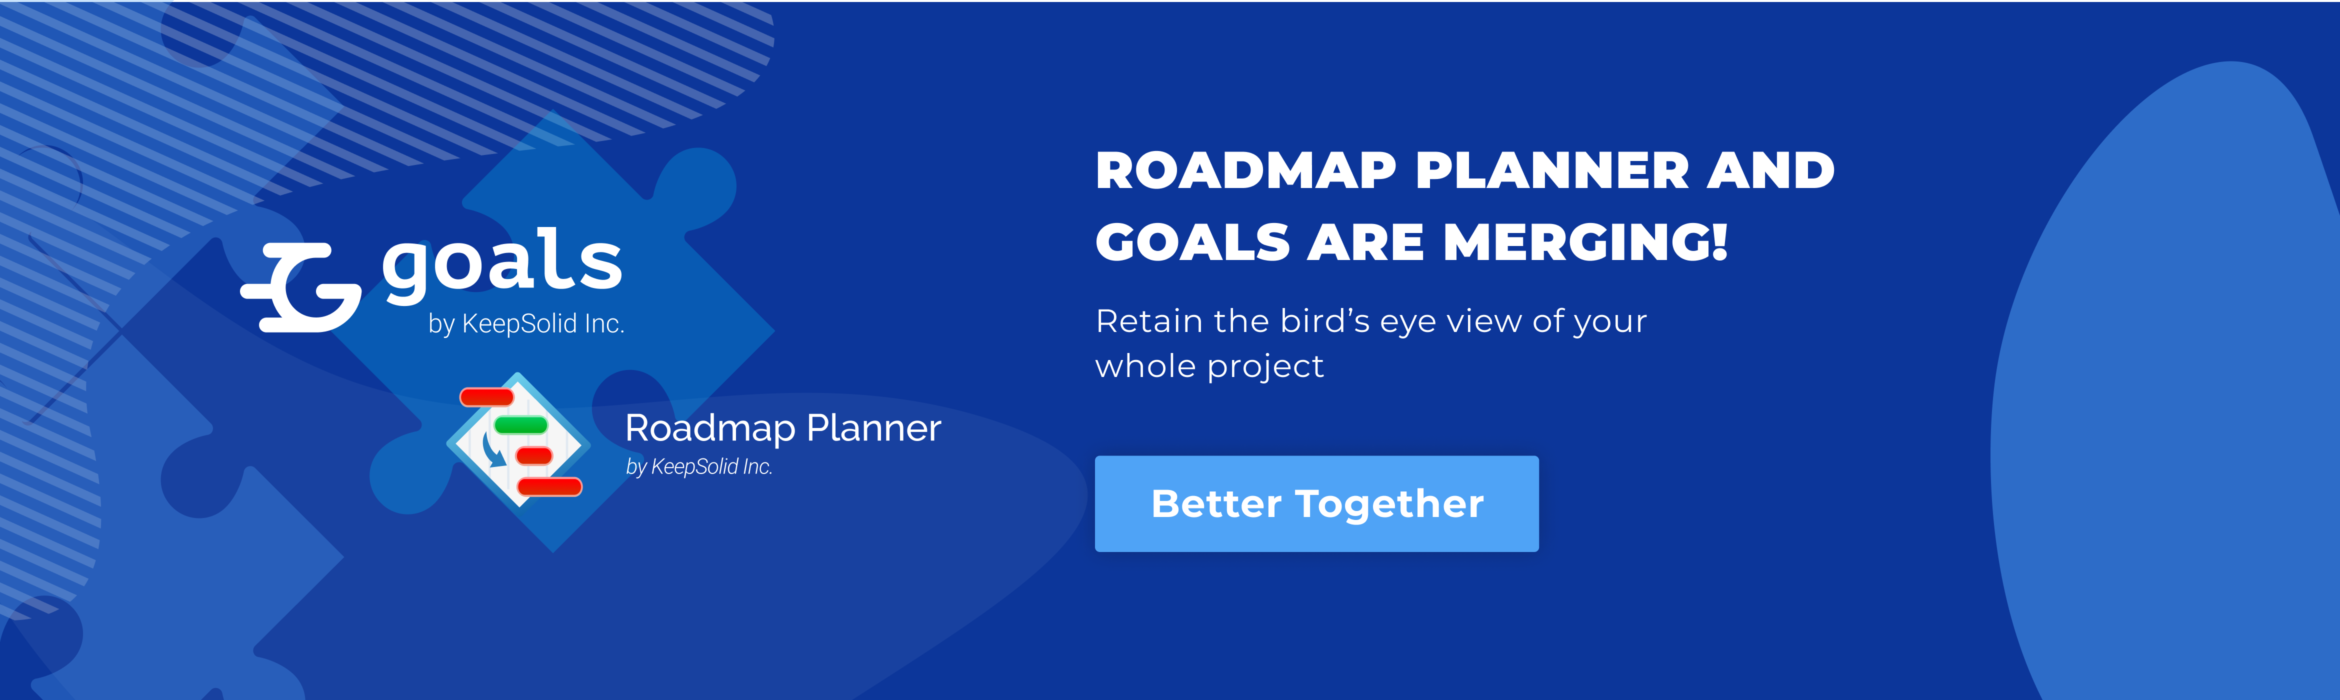 Roadmap Planner merges with Goals by KeepSolid